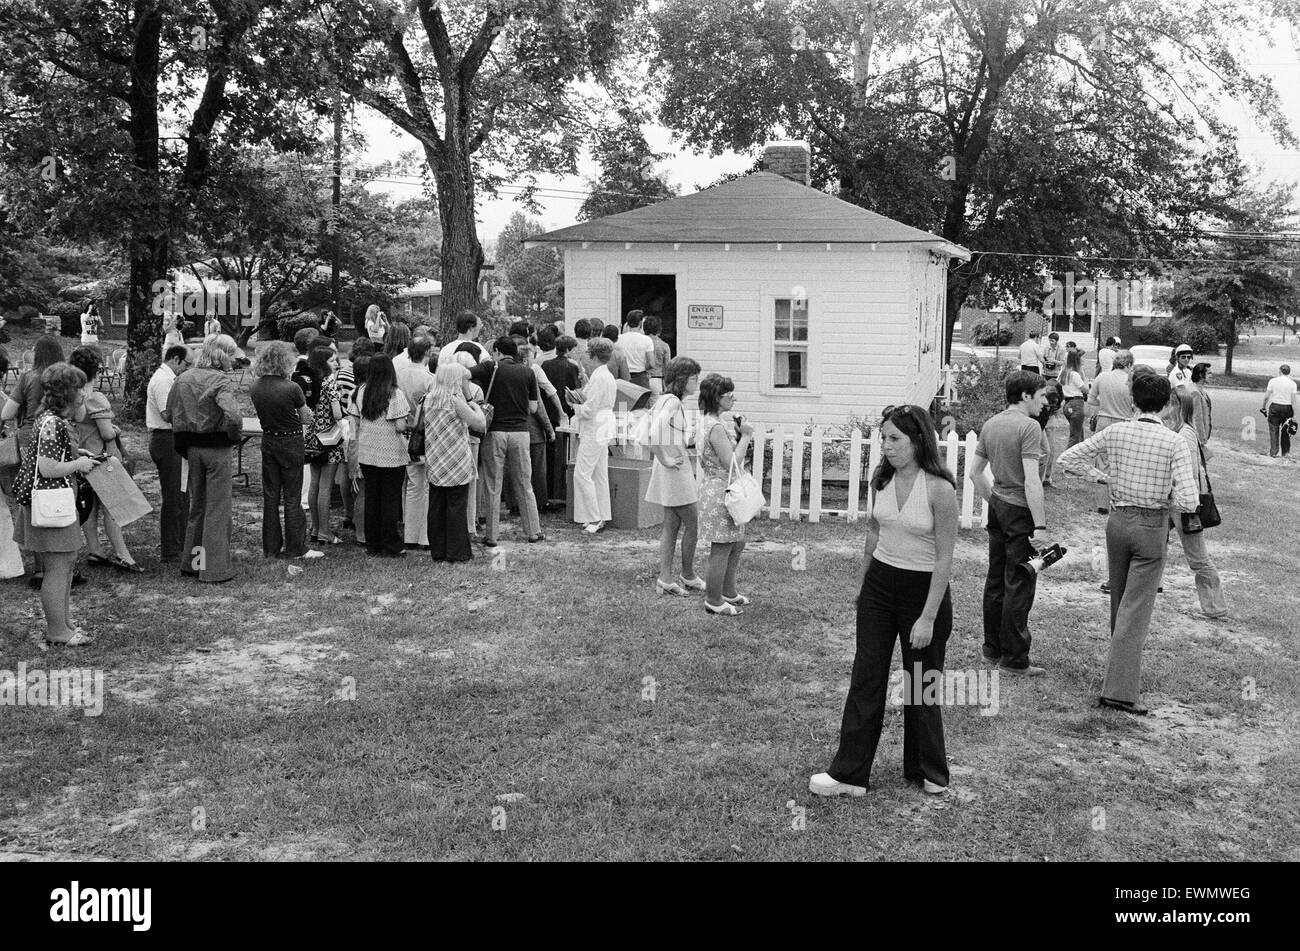 Elvis Presley Fans, visit the birthplace of their idol in Tupelo, Lee County, Mississippi, USA, 27th August 1973. - Stock Image